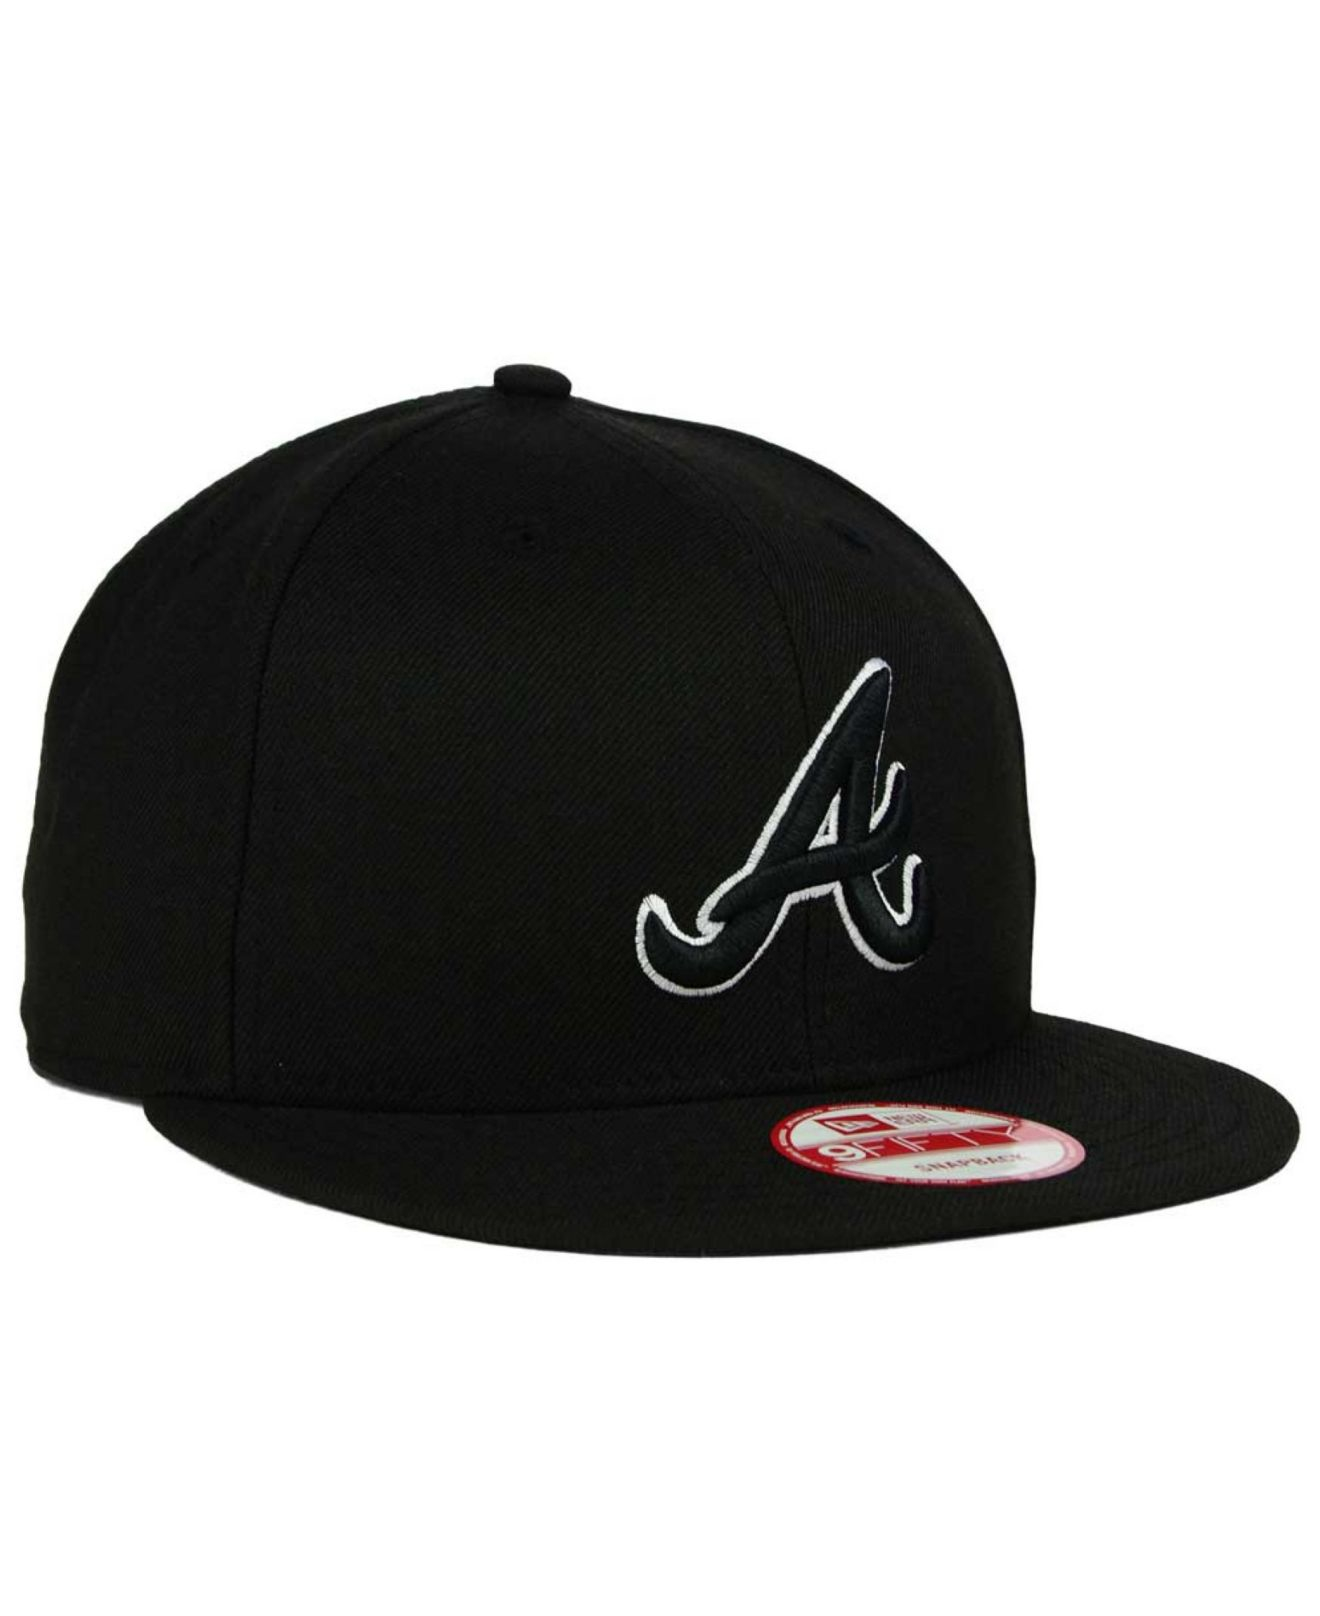 finest selection 8207f e25f8 ... discount code for lyst ktz atlanta braves b dub 9fifty snapback cap in  black for men ...